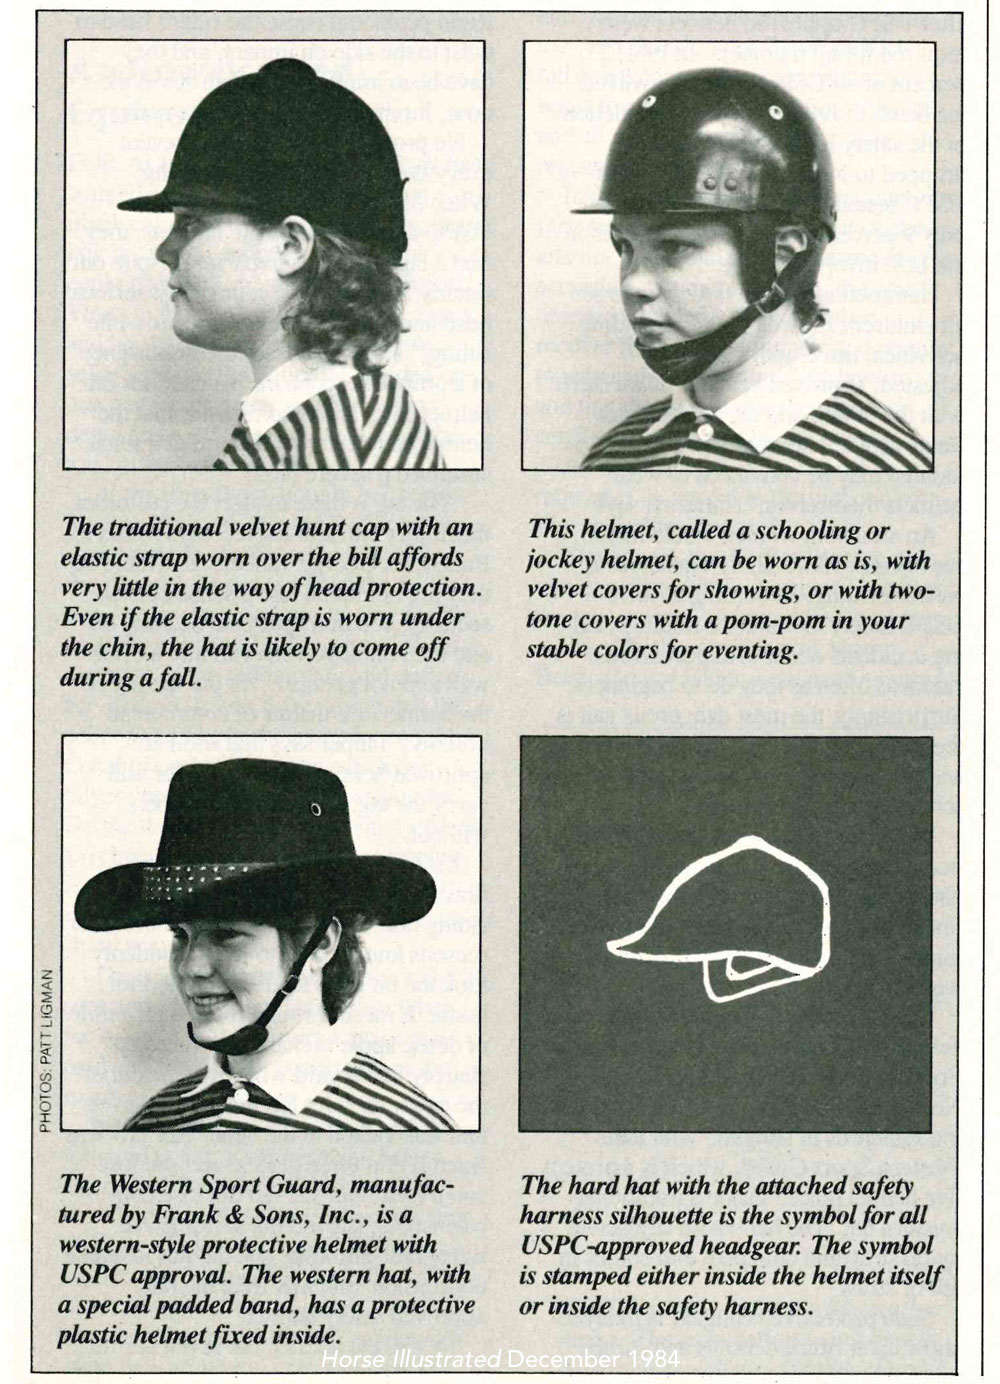 Helmet Designs of the 1980s